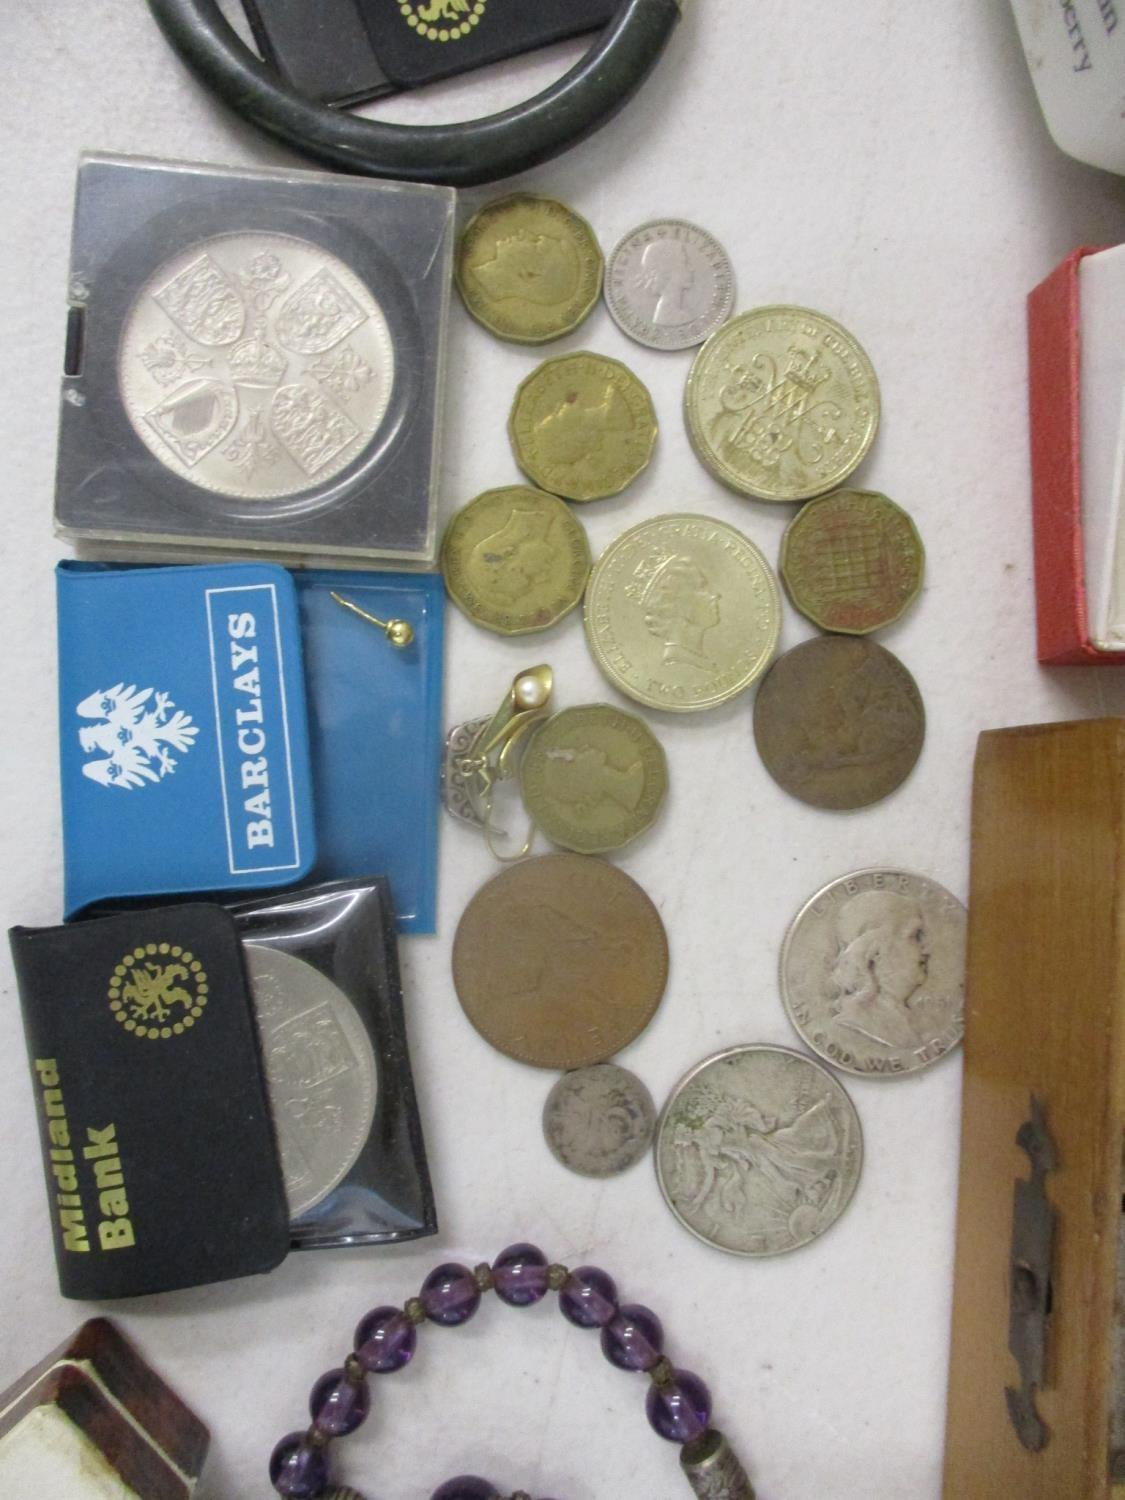 Lot 135 - Collectables to include a silver cased wristwatch, coins, a ten shilling banknote, an enamelled